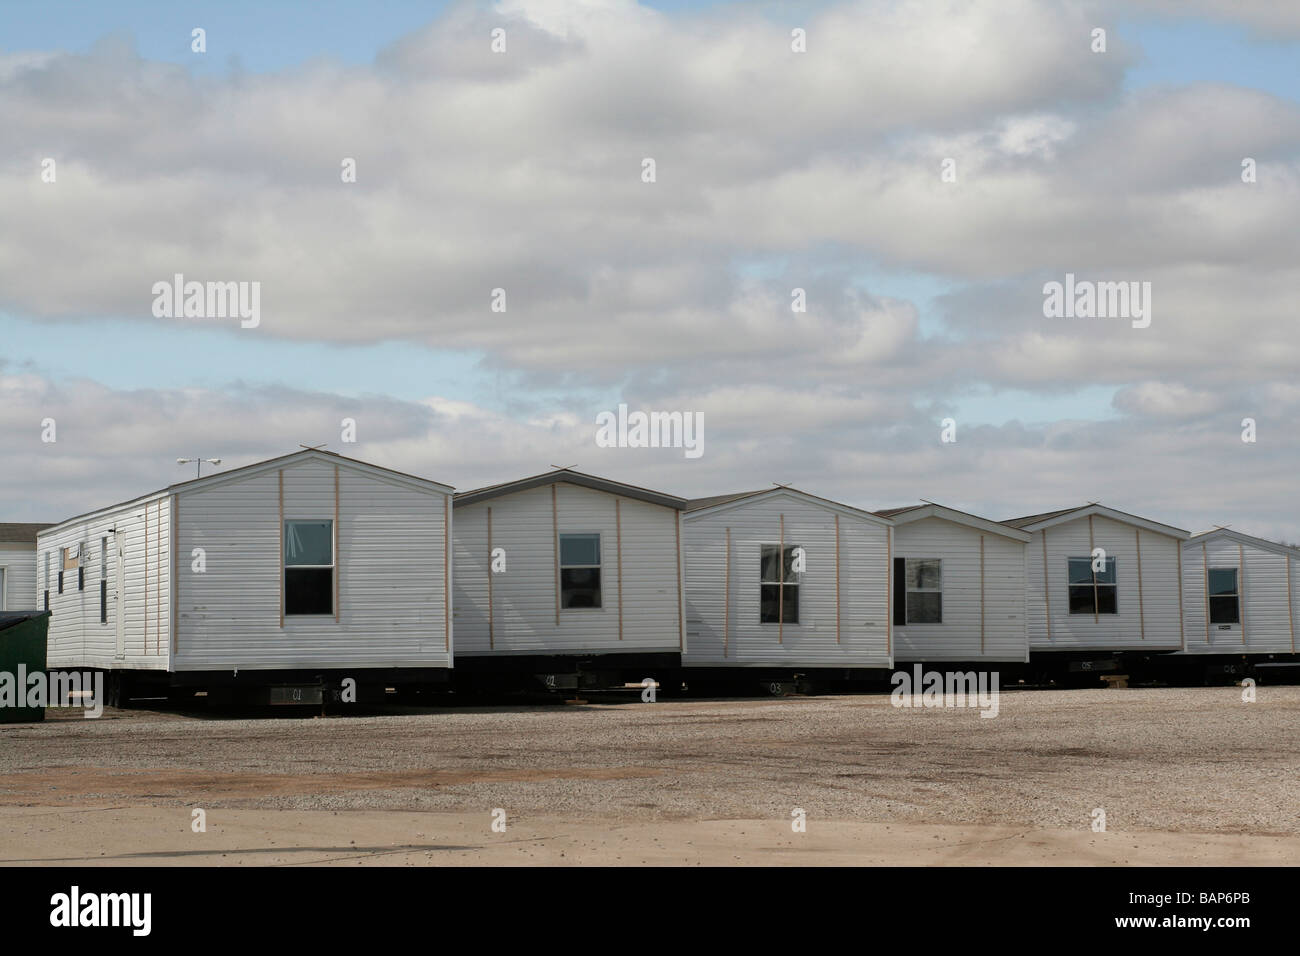 Fema Trailer Stock Photos & Fema Trailer Stock Images - Alamy on southern energy mobile homes, justice mobile homes, craigslist mobile homes, rv mobile homes, cheap mobile homes, hawaii mobile homes, marshfield mobile homes, insides bathrooms mobile homes, trailer trash mobile homes, multiple mobile homes, upscale mobile homes, refurbished mobile homes, acadiana homes, adding additions to mobile homes, hud mobile homes, prefab additions for mobile homes, texas mobile homes, new orleans mobile homes, california mobile homes,